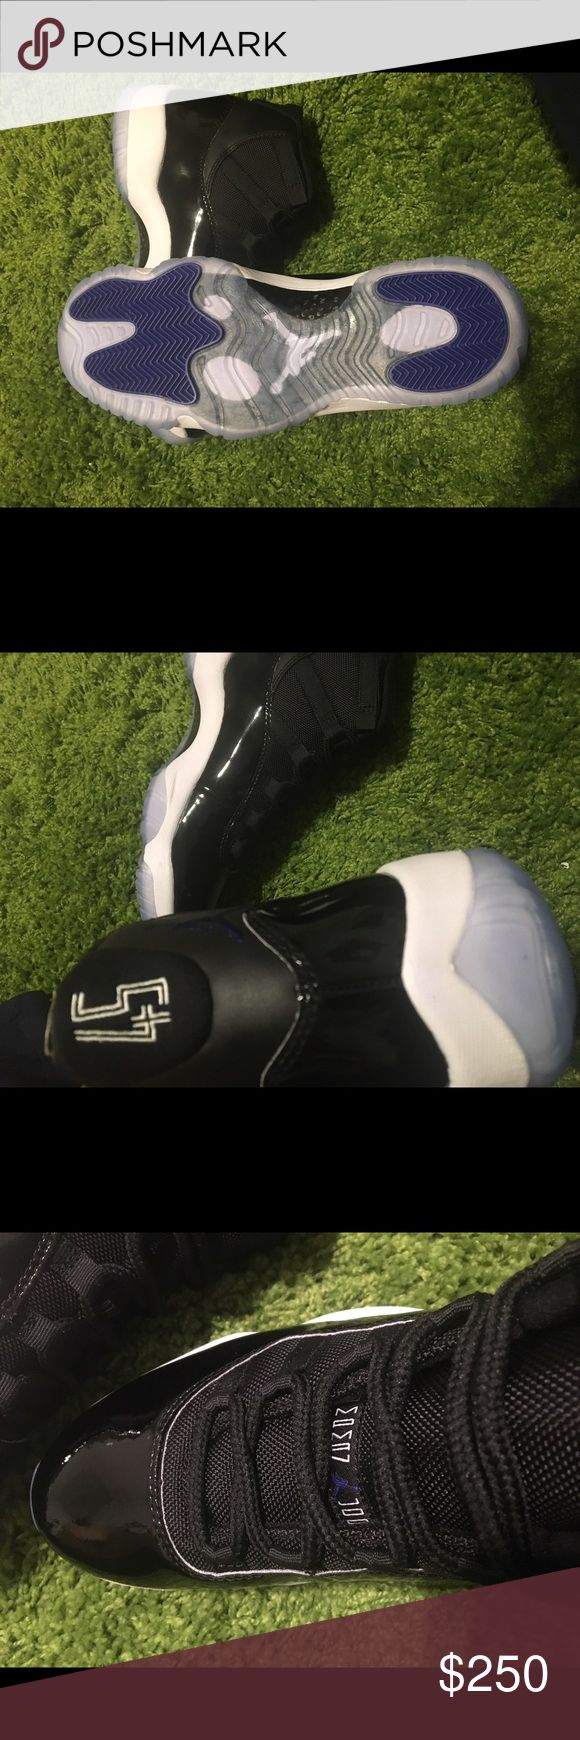 Air Jordan Space Jam Men sz 10 FAST SHIPPING  PROTECTED PACKAGING TO PRVENT DAMAGE  AUTHENTIC ANY NEGATIVE COMMENTS WILL BE BLOCKED   YES I OFFER BUNDLES COMMENT AND LET ME KNOW WHAT YOU WOULD LIKE Jordan Shoes Sneakers